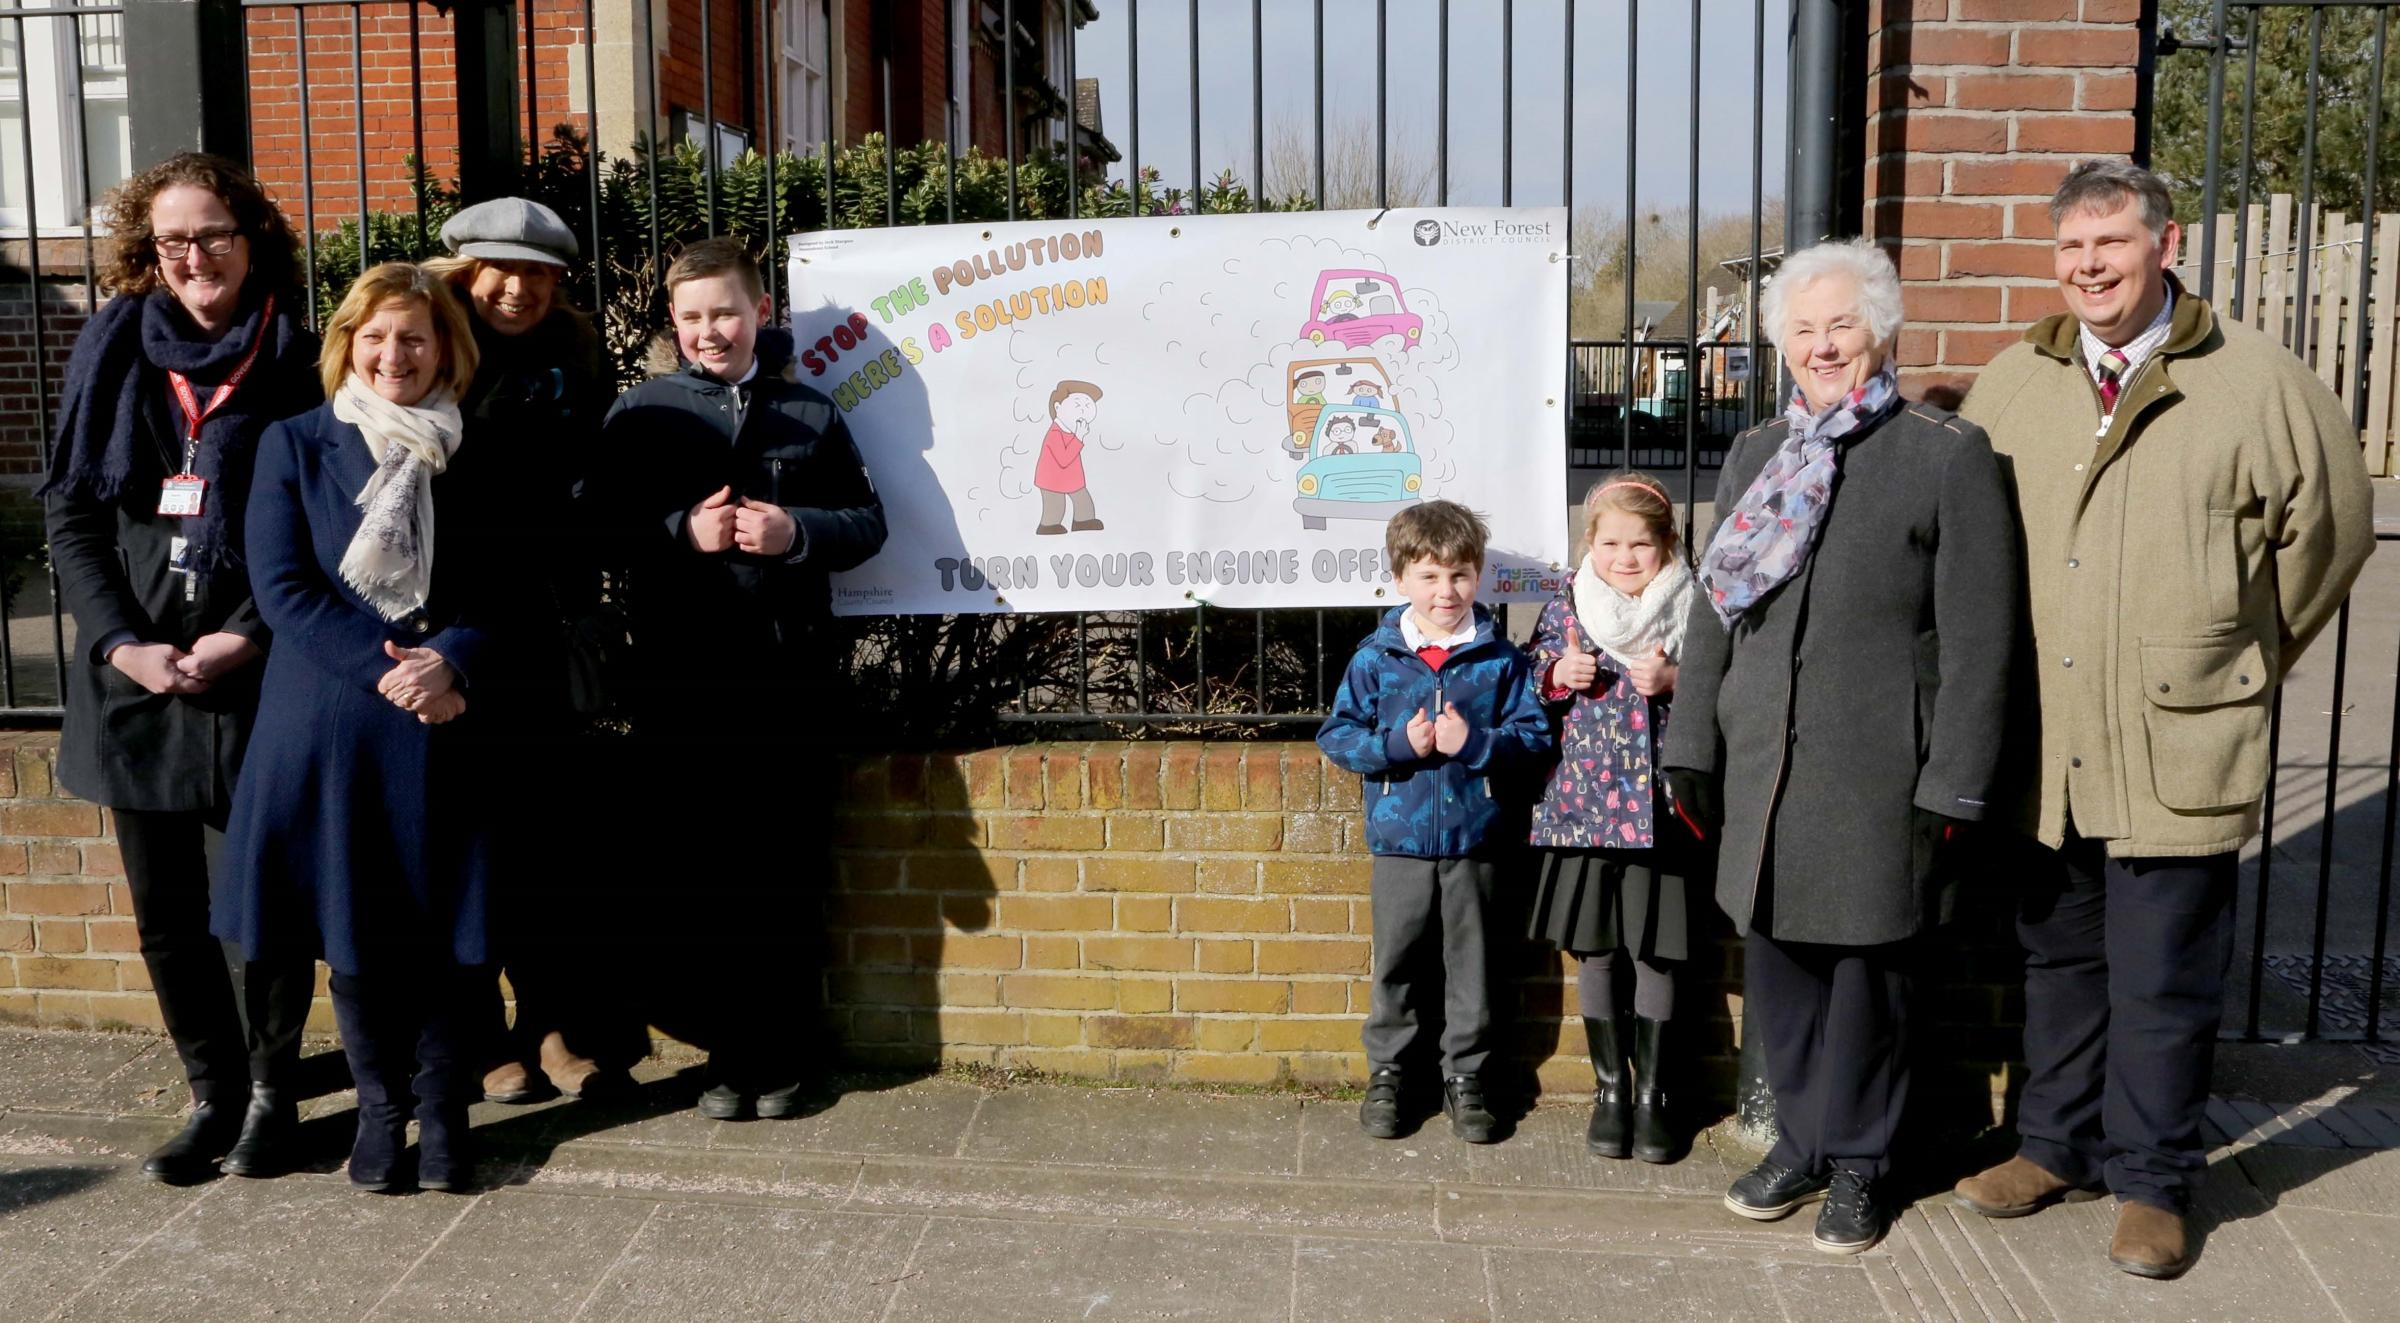 Pictured, from left, are Marie Kirk, chair of governors at St Michaels and All Angels Infant School, Tina Daniels, the school's executive head, Cllr Alison Hoare, Jack Sturgess, who designed the banner, school pupils, Cllr Pat Wyeth and Cllr Edward He